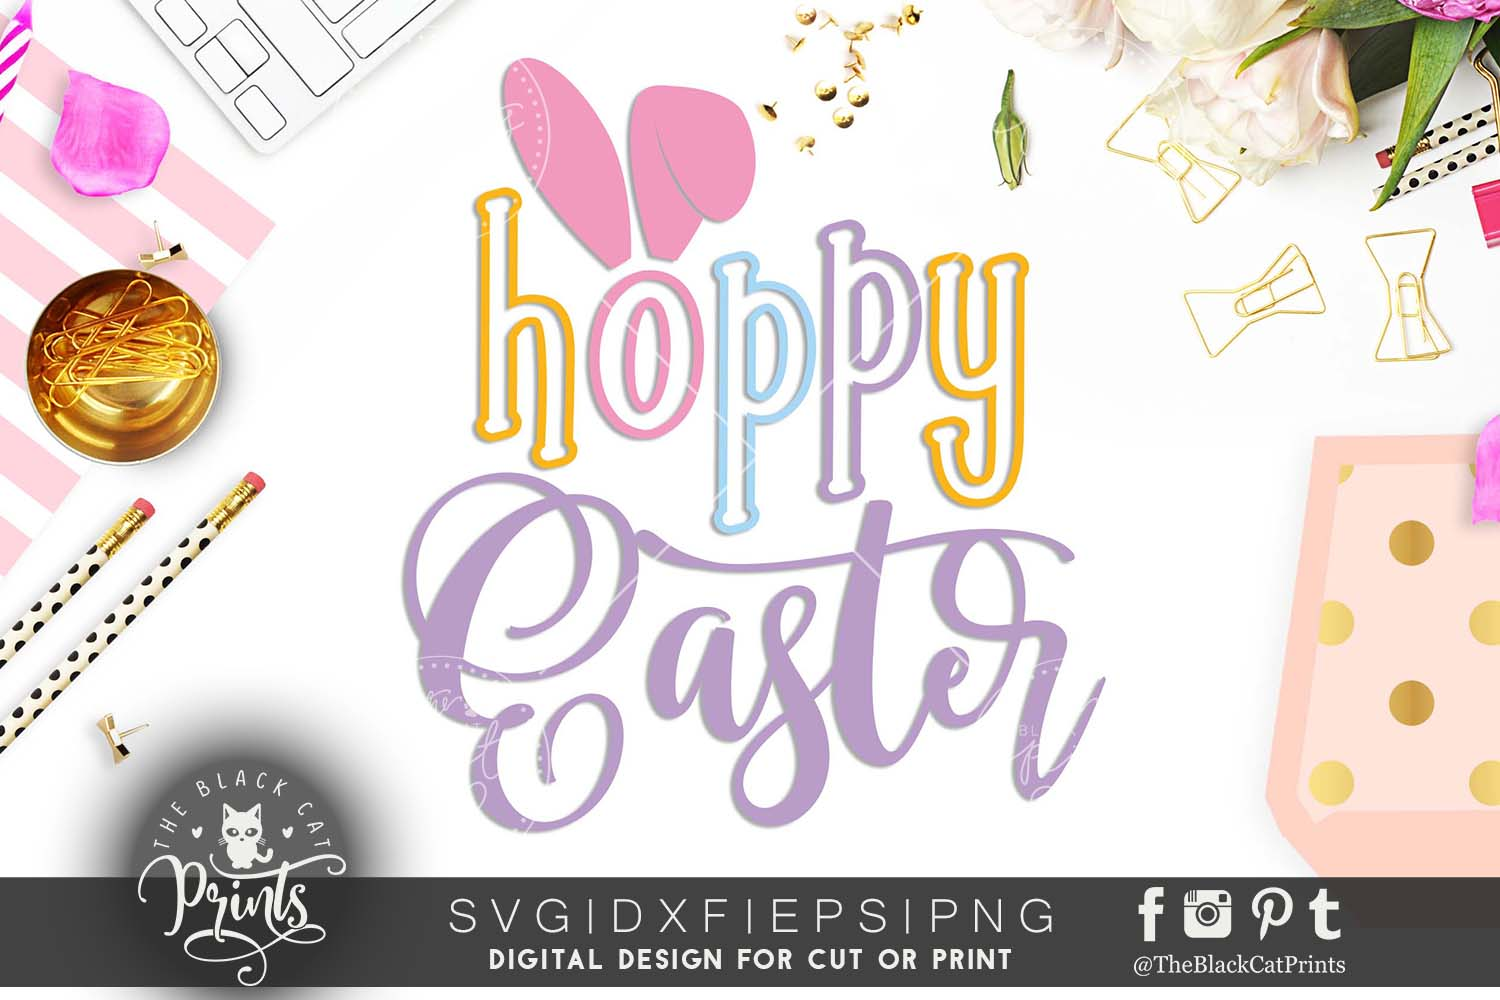 Hoppy Easter SVG DXF PNG EPS example image 2